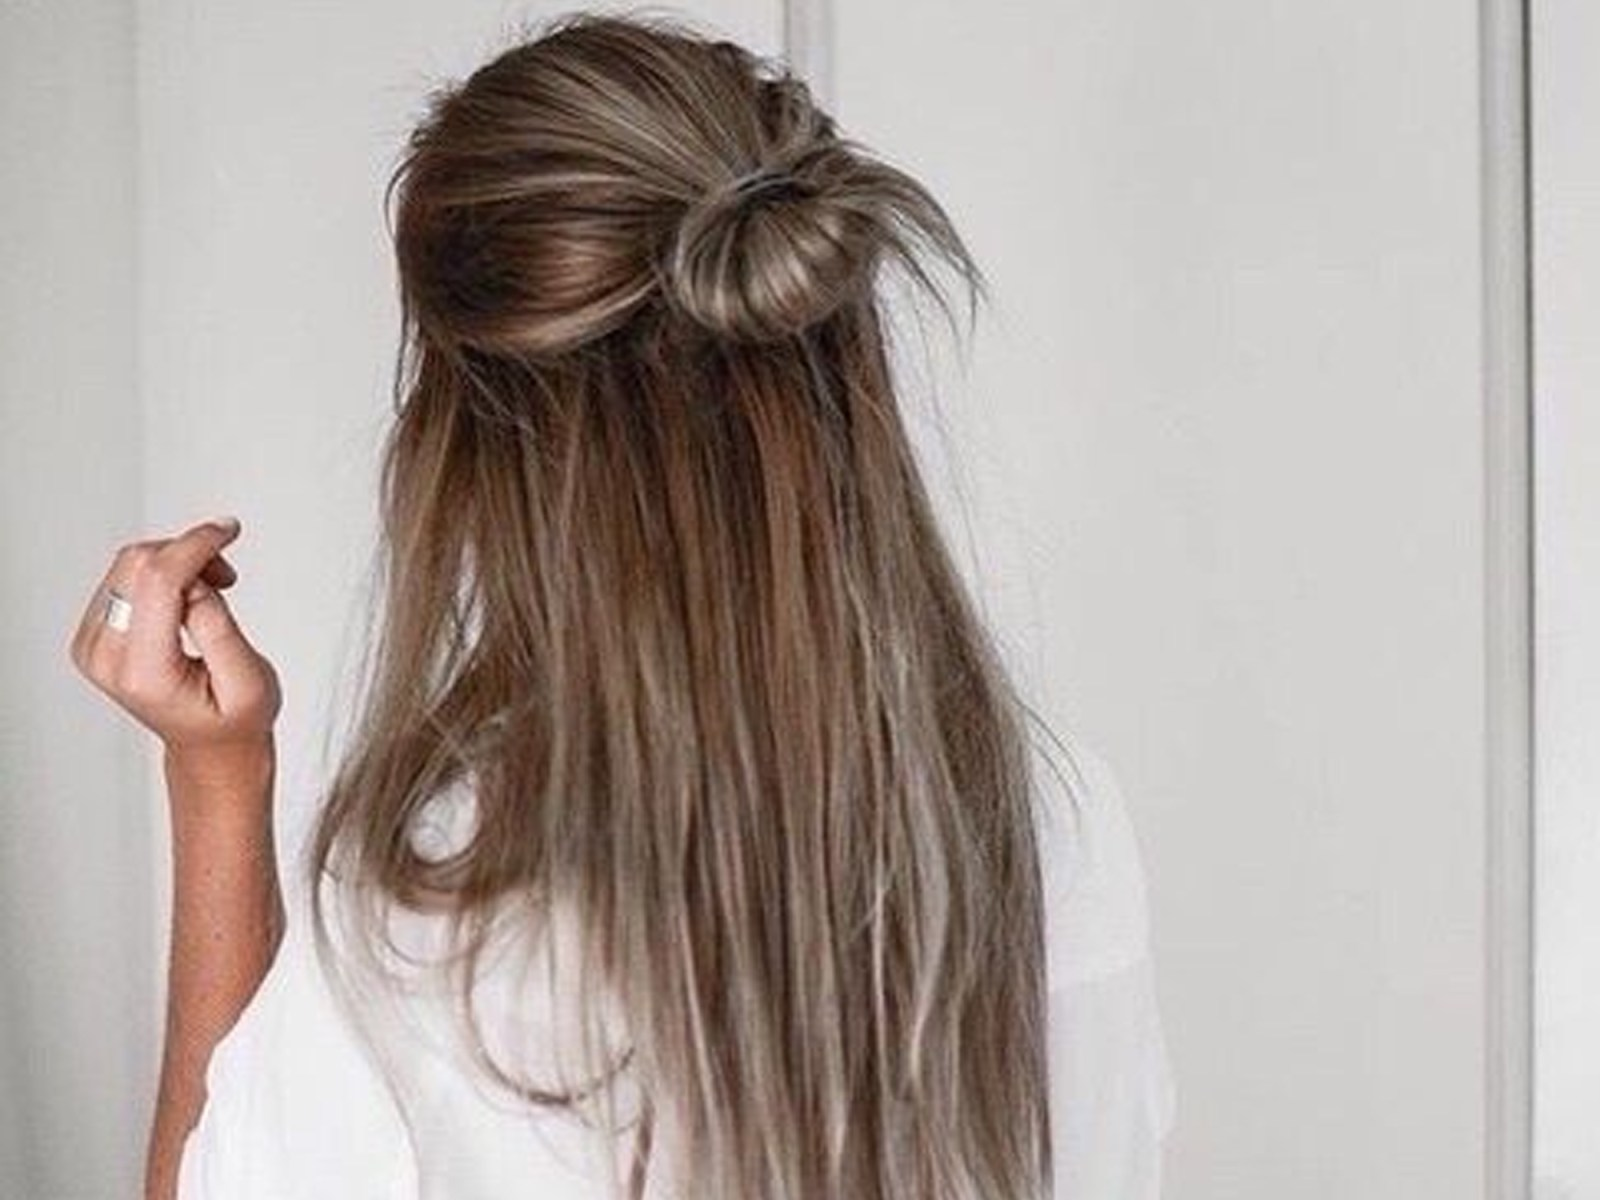 12 Quick Easy Hairstyles For The Next Day You Feel Lazy - Society12 UK